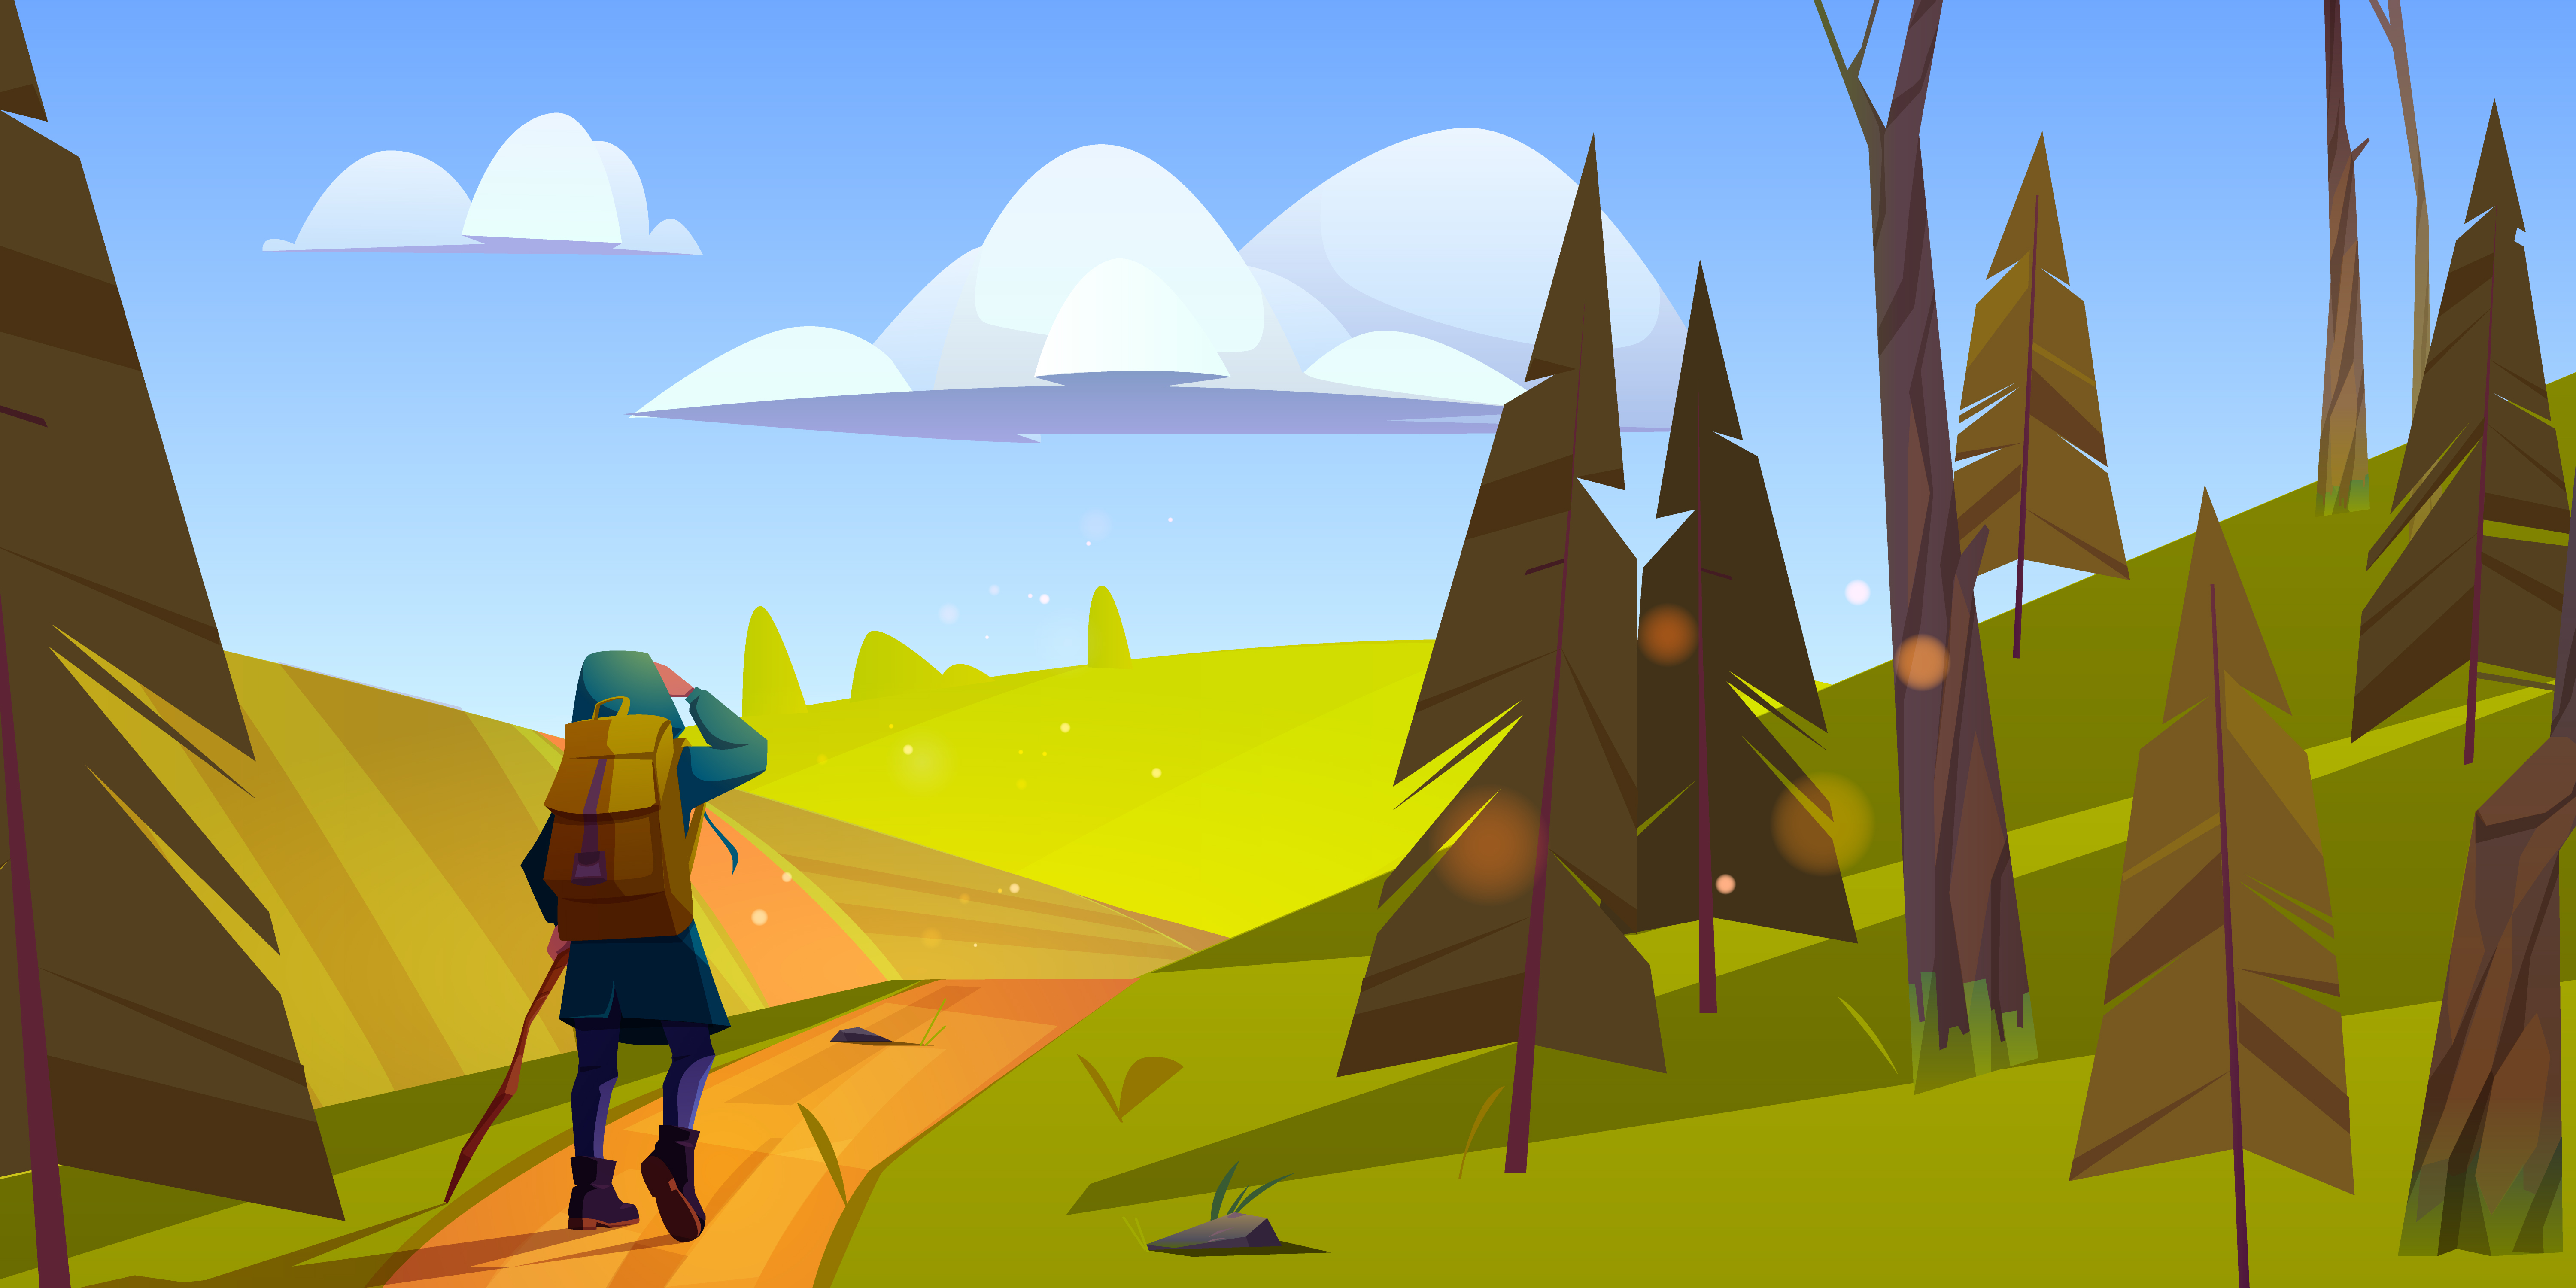 A digital painting showing a person beginning a hike in the mountains on a sunny day.